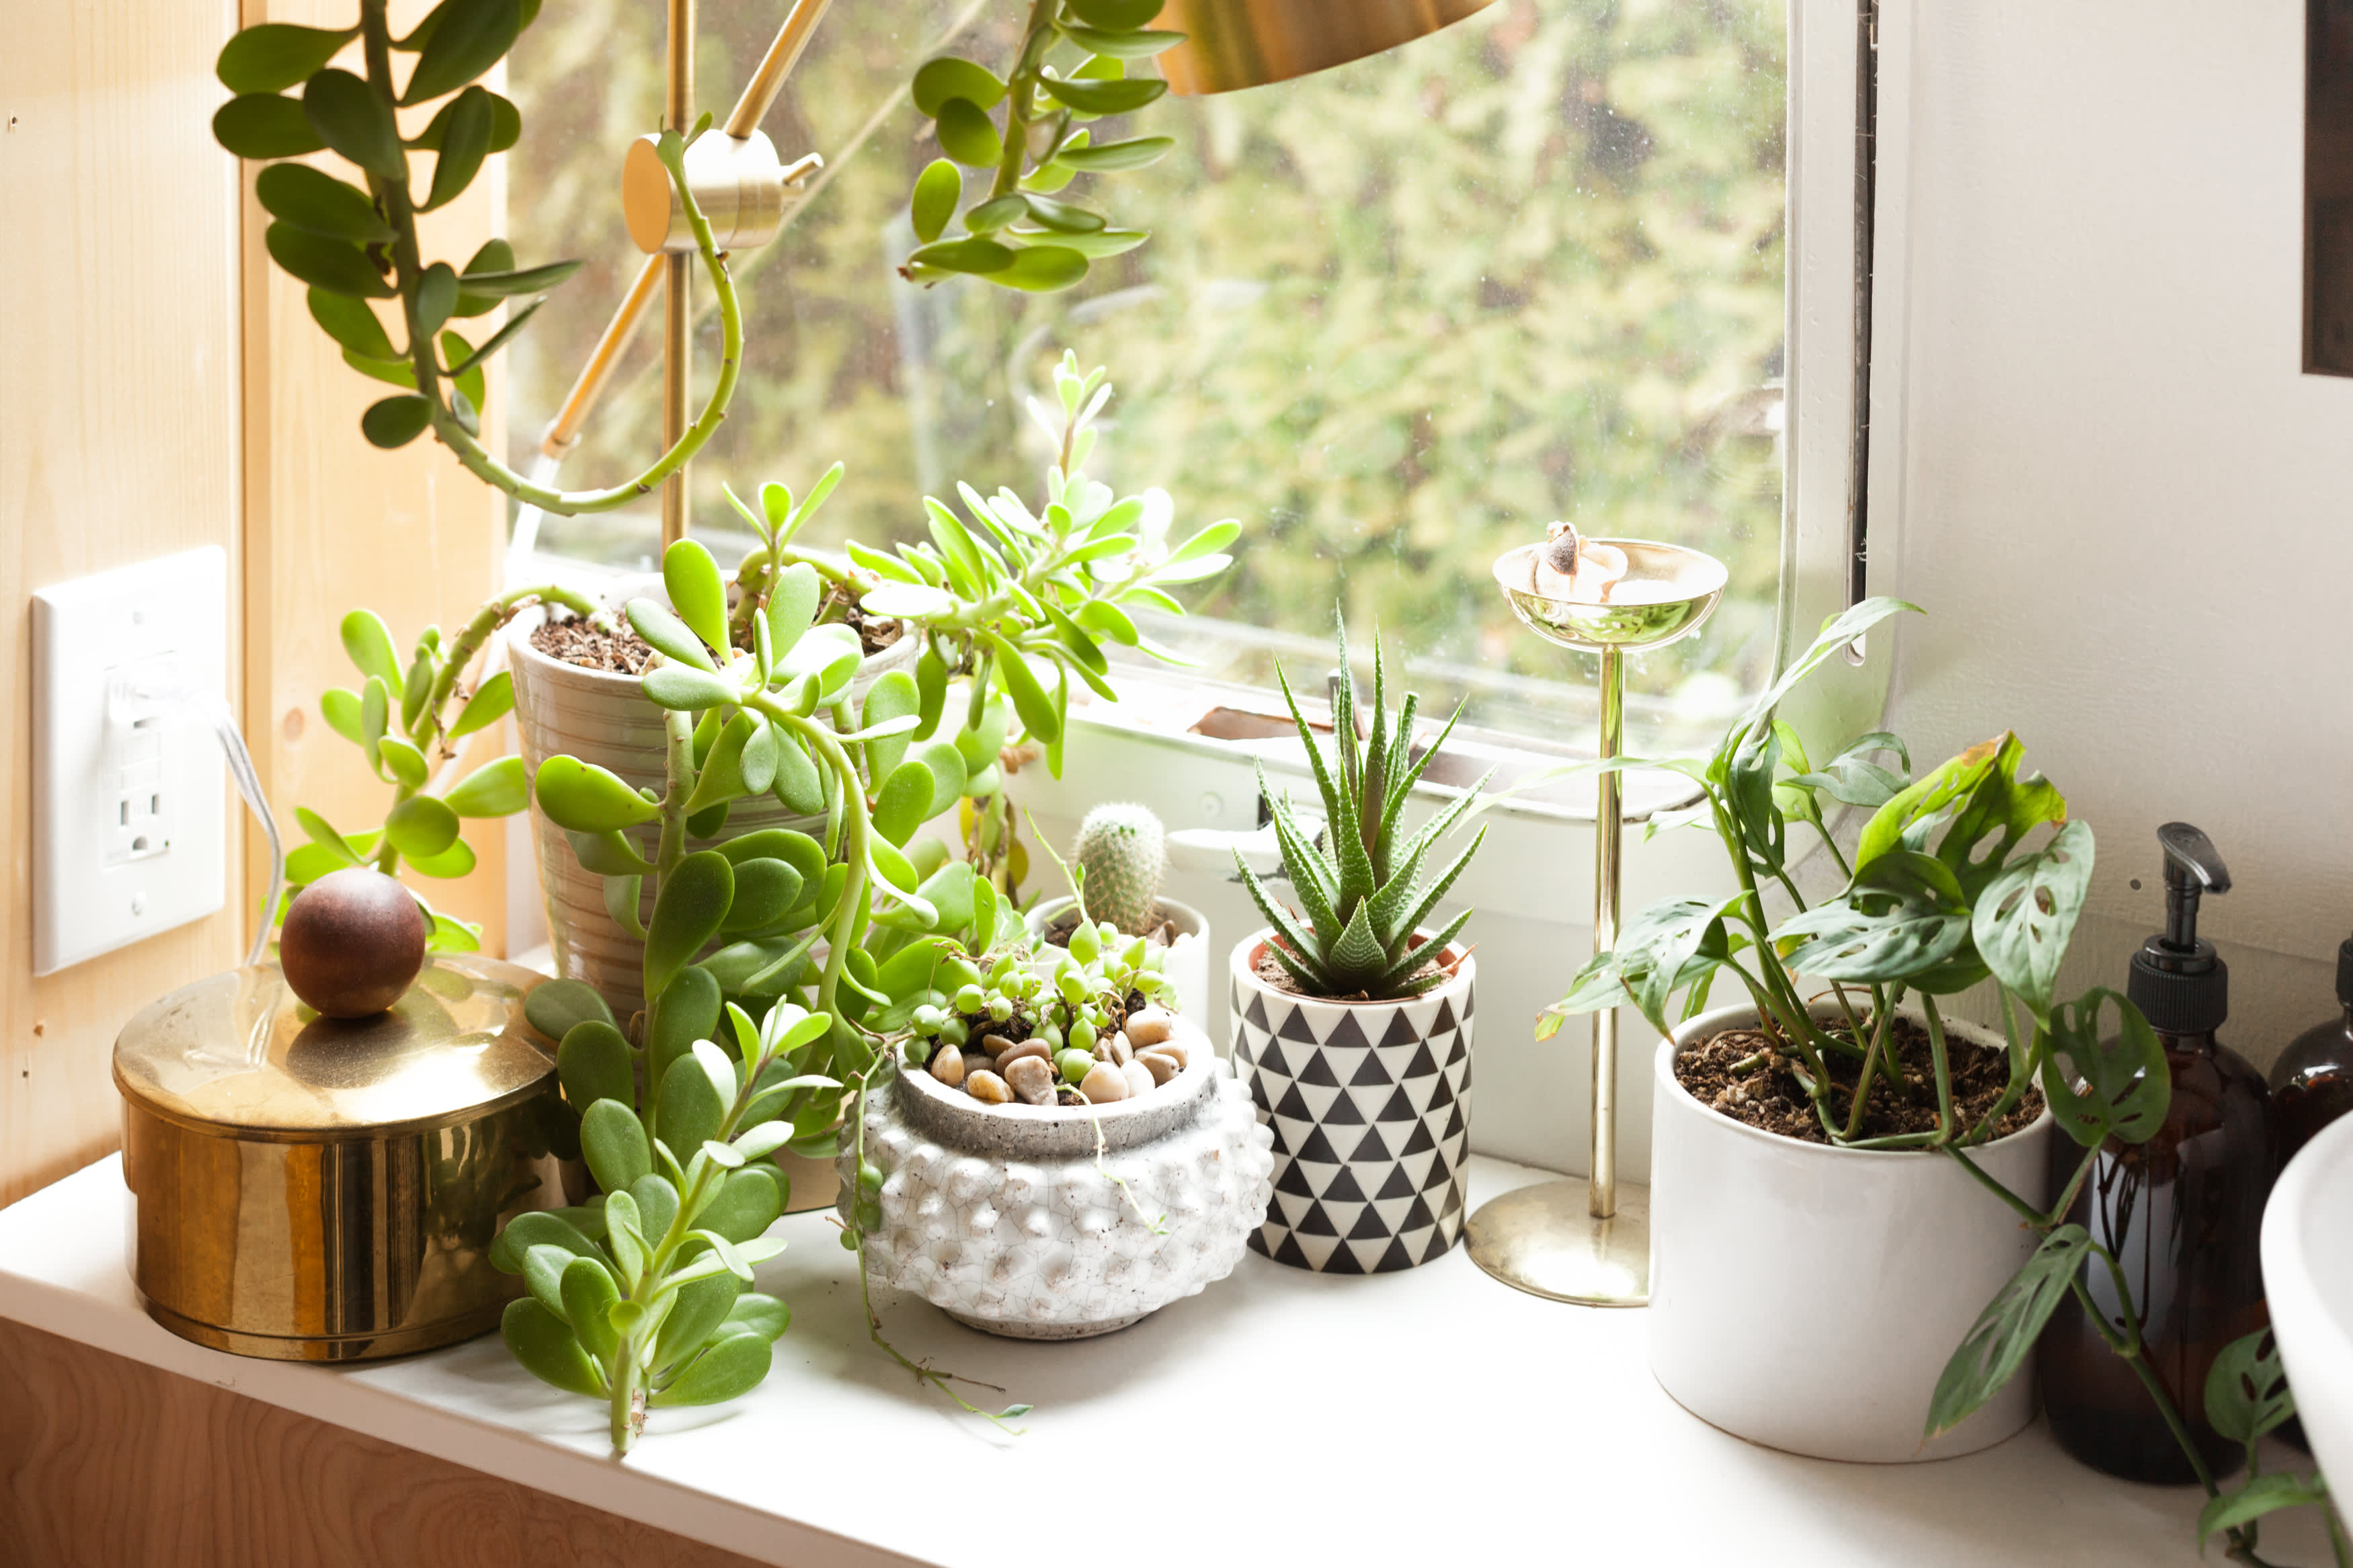 7 Great Sources for Buying Cheap Houseplants Online